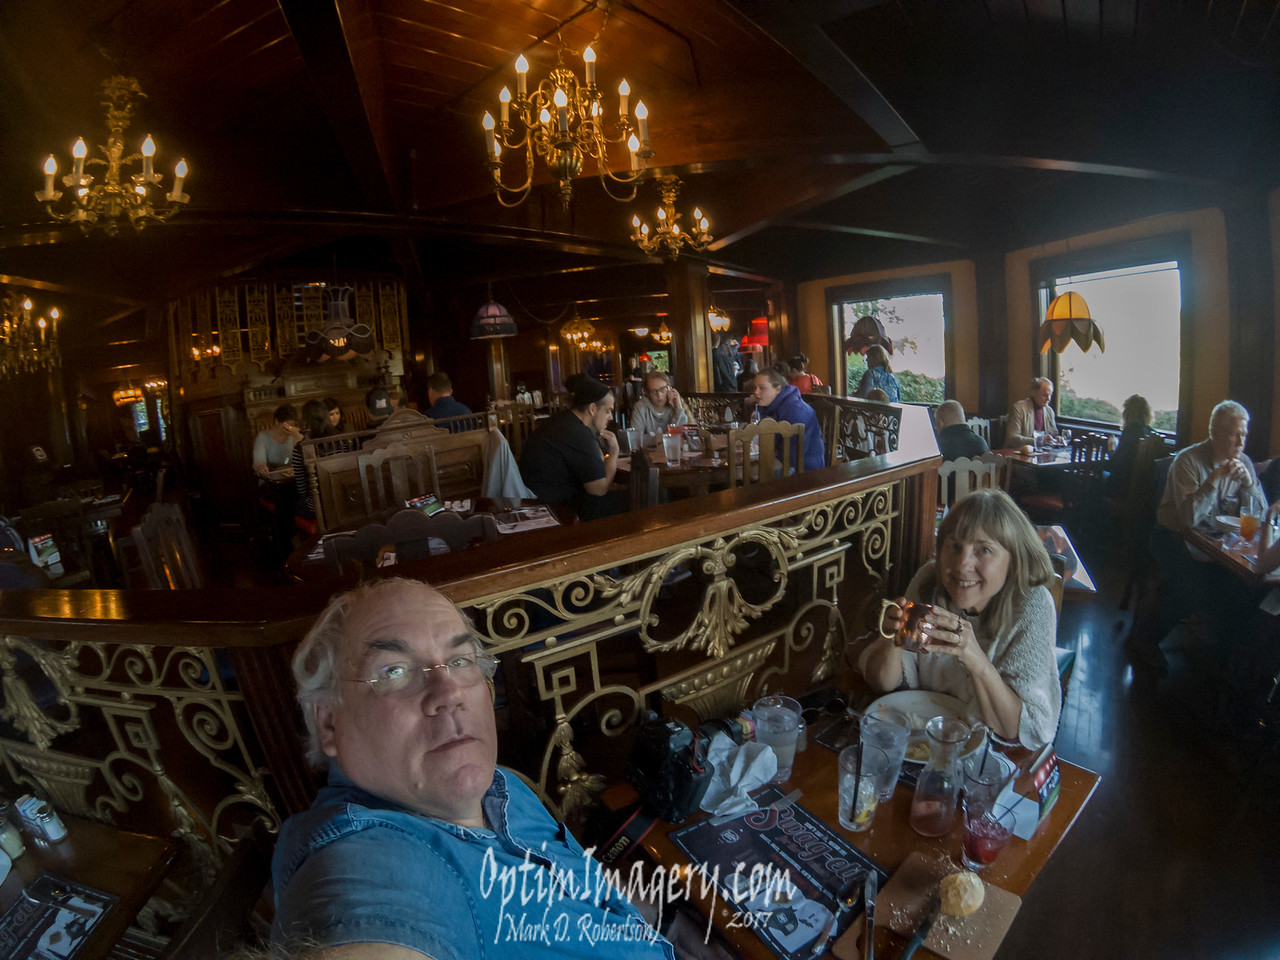 GOPRO SELFIE AT OLD SPAGHETTI FACTORY